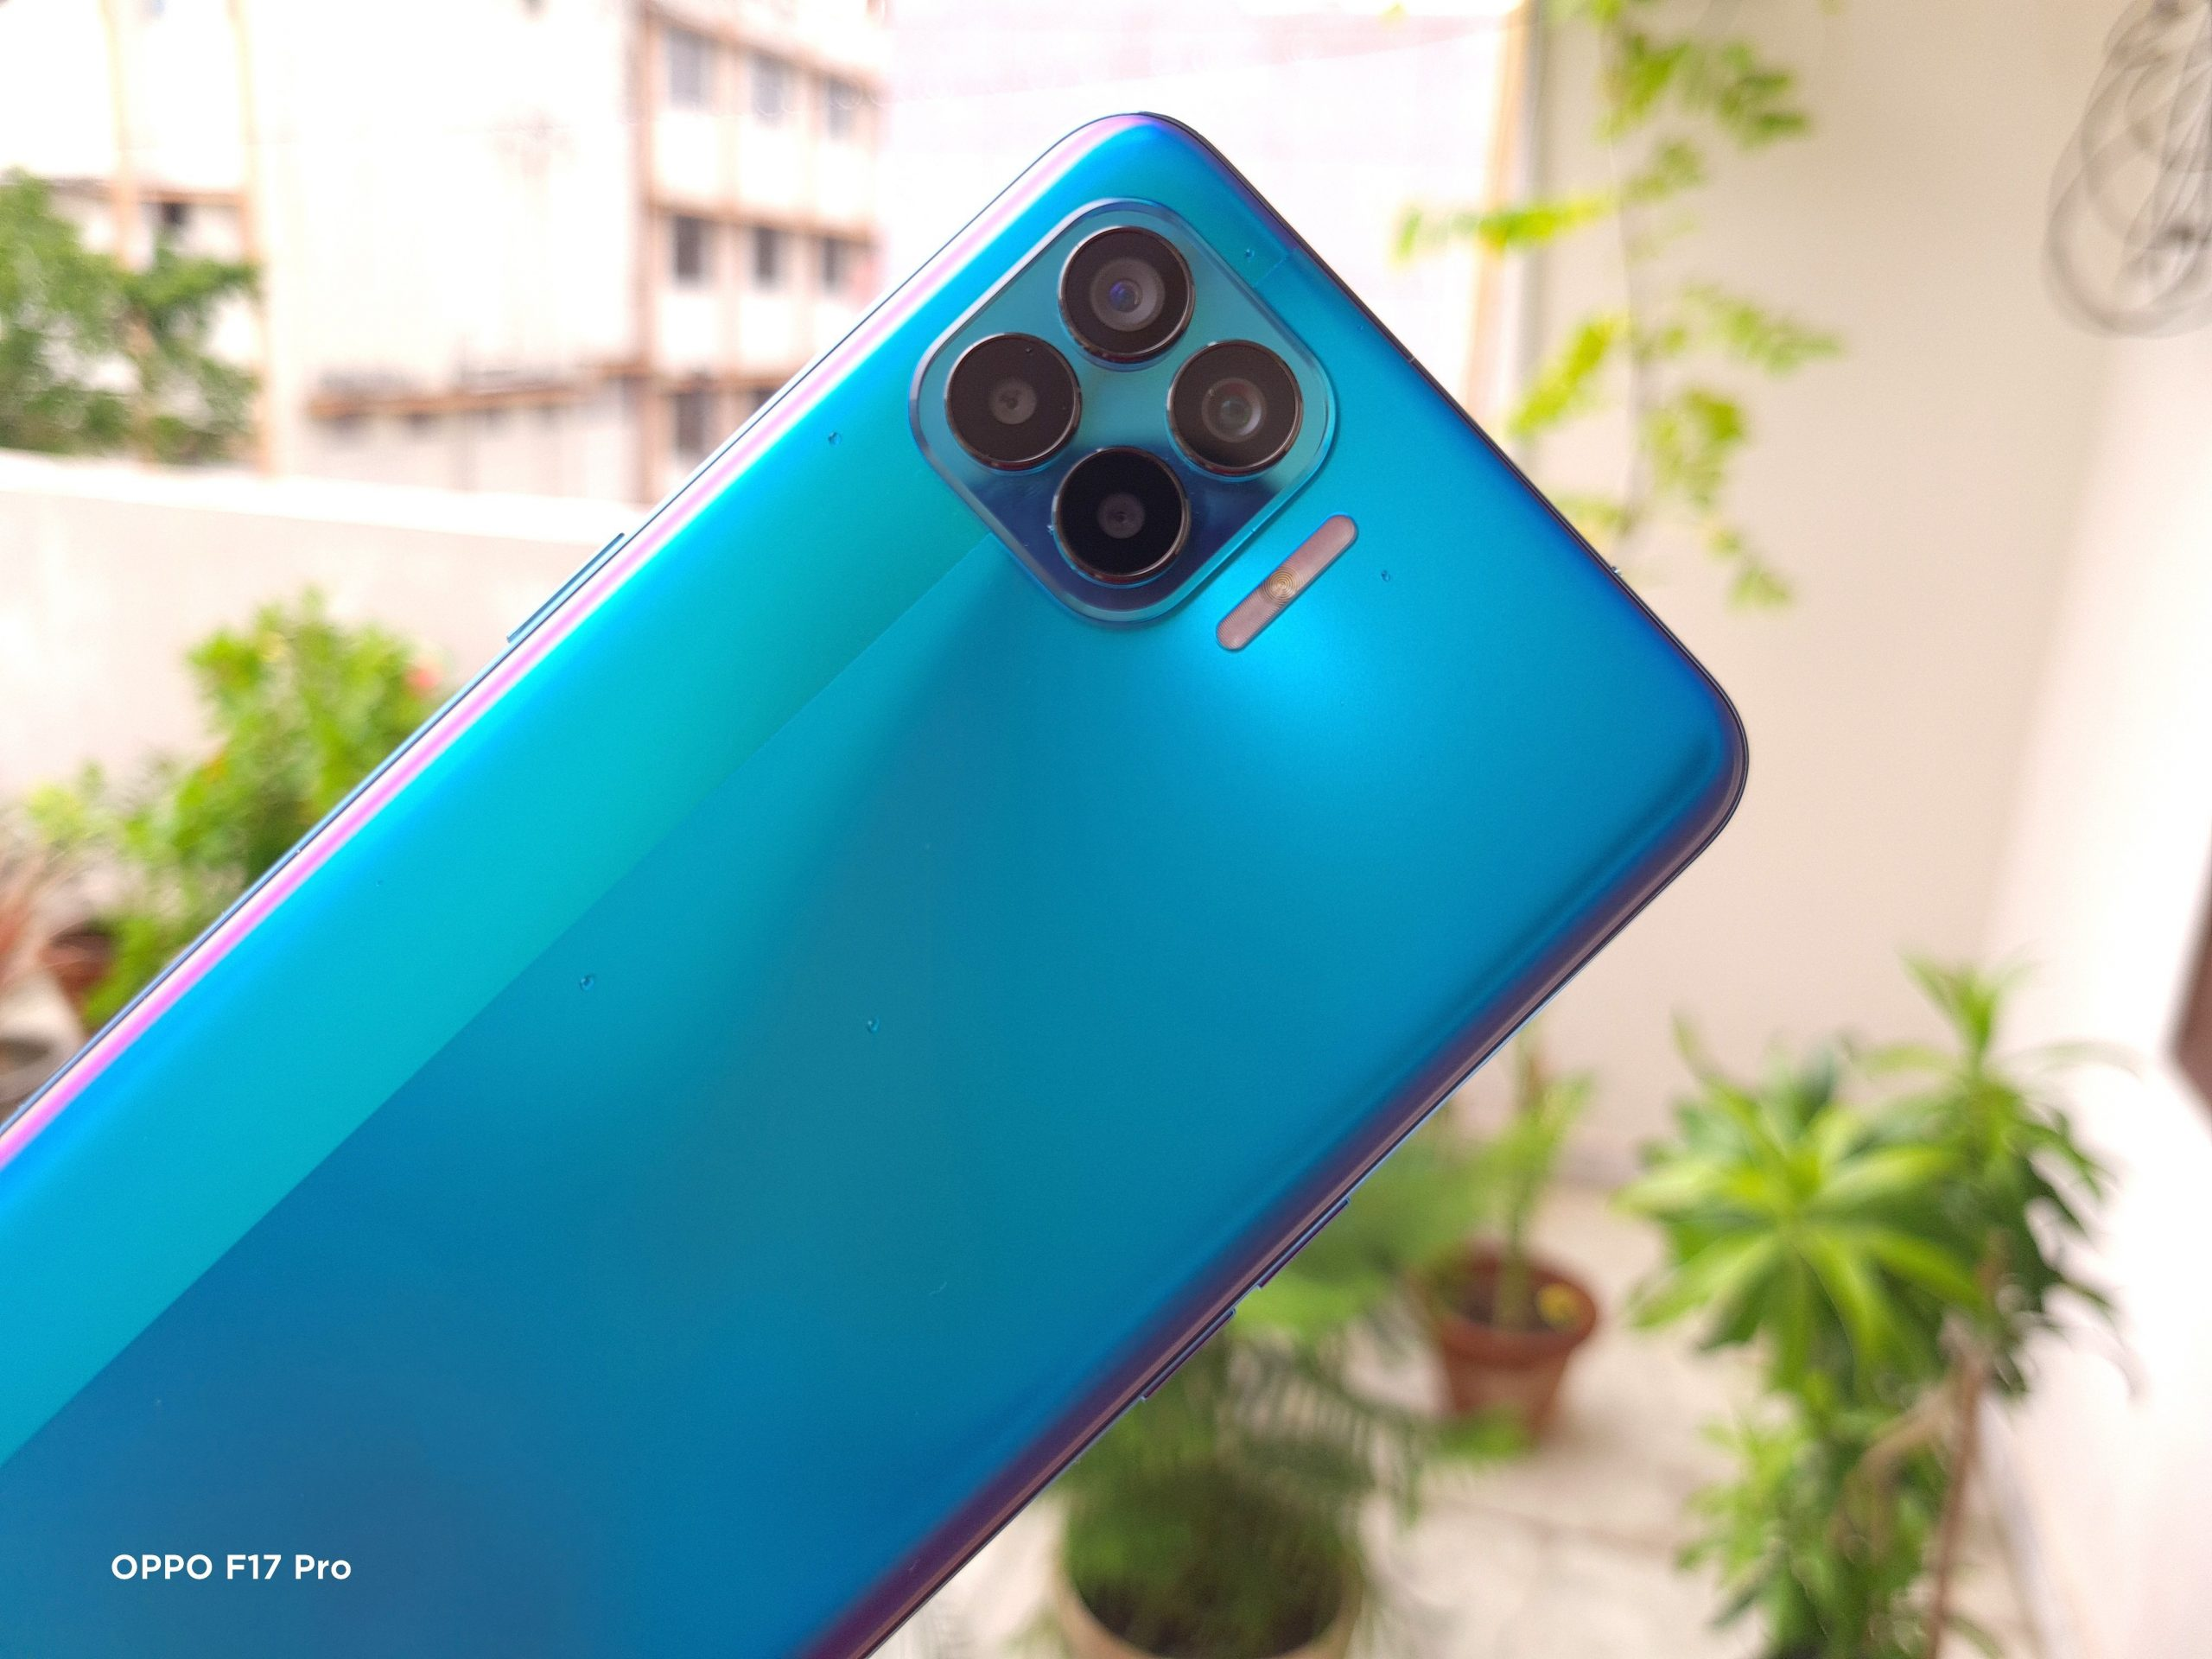 Oppo F17 Pro Price in Pakistan, Specs, and Release Date